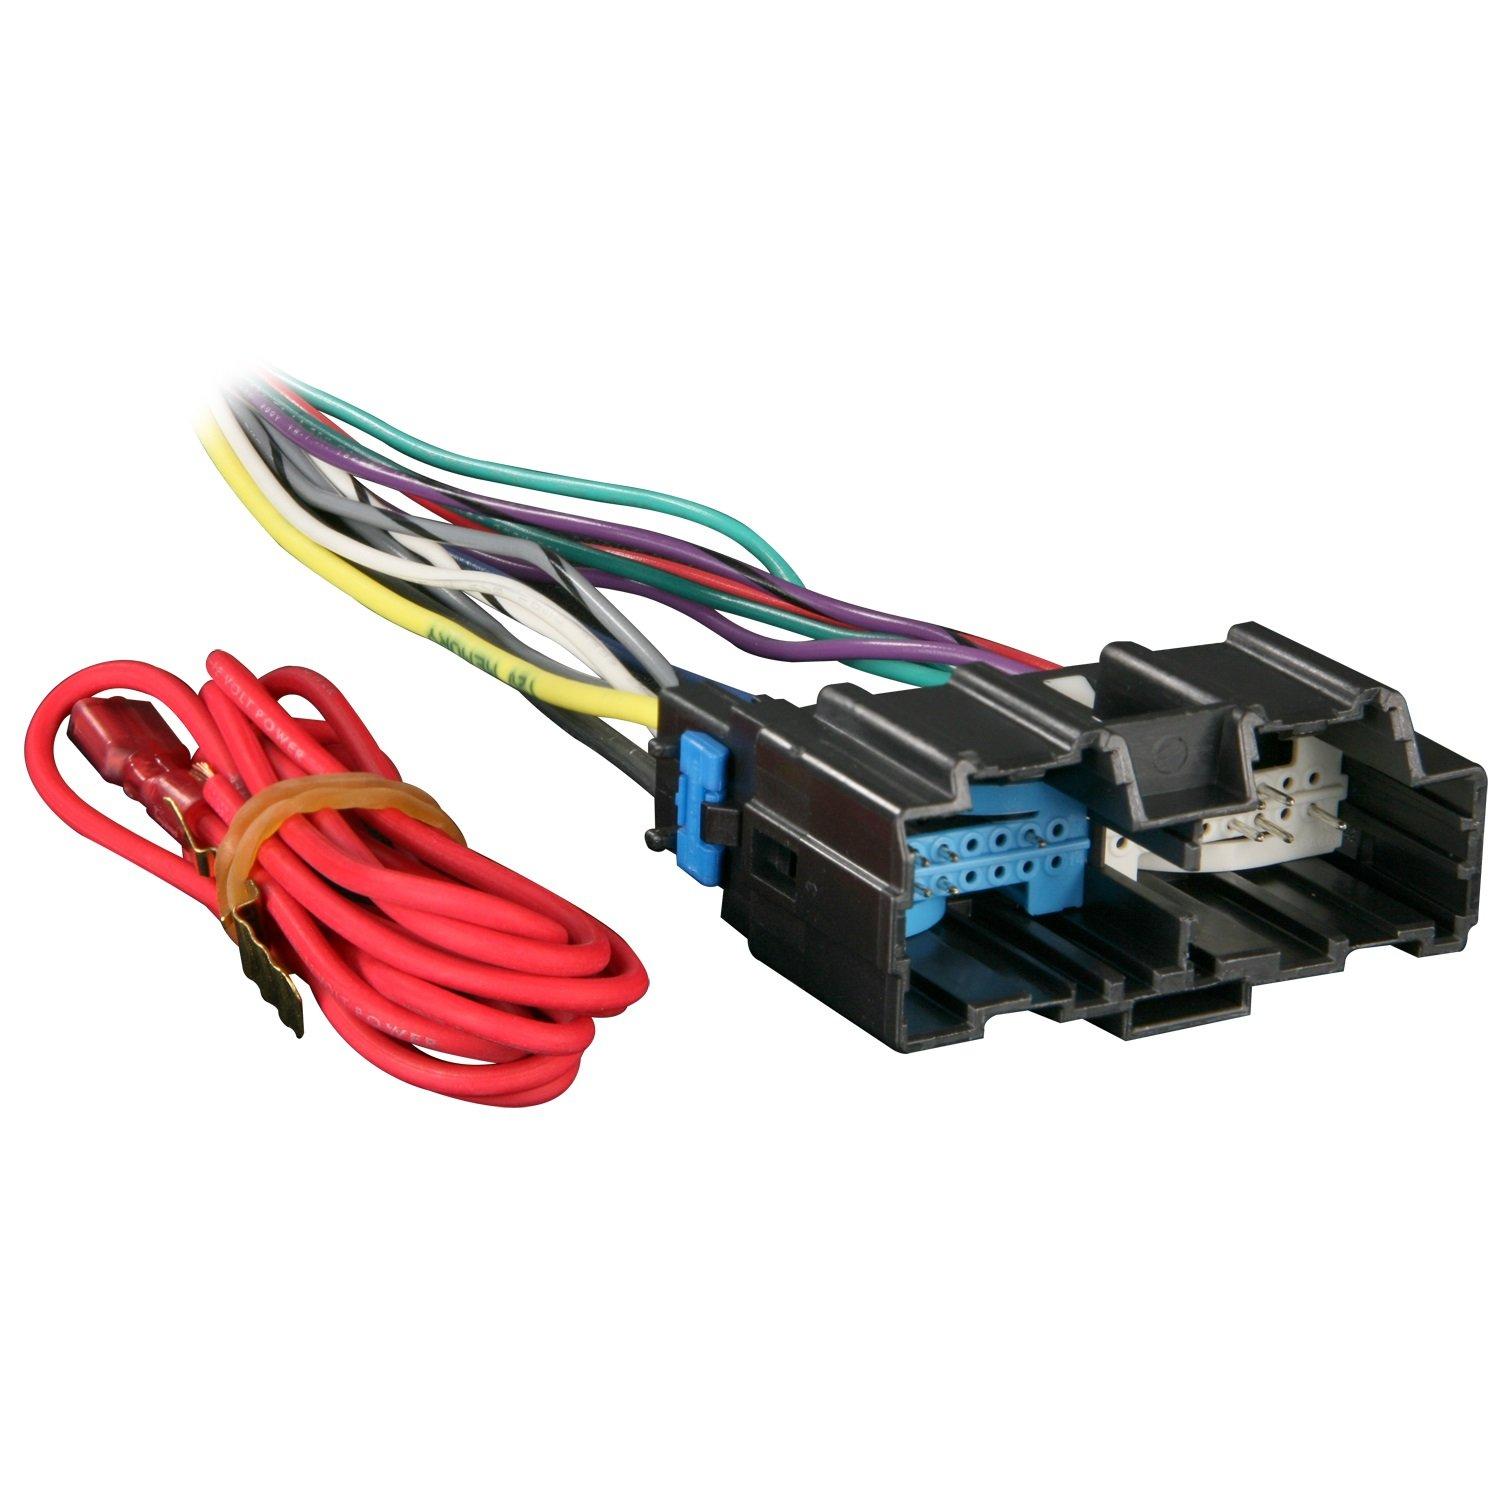 71ZzH dyg7L._SL1500_ amazon com metra 70 2105 radio wiring harness for impala monte Car Stereo Wiring Colors at nearapp.co